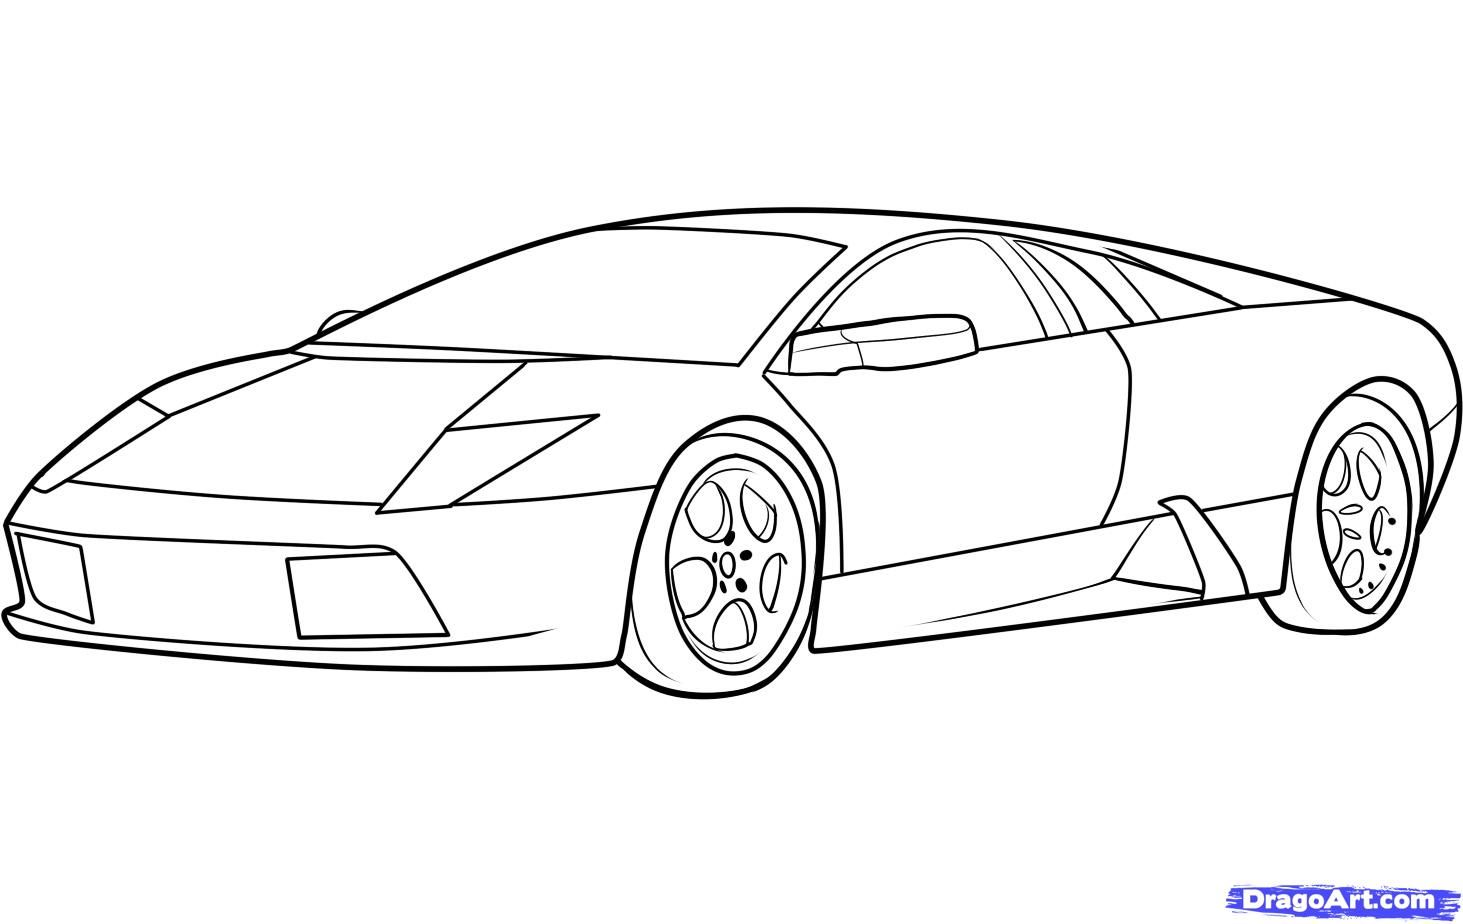 How to draw Lamborghini (Lamborghini Murcielago) step by step